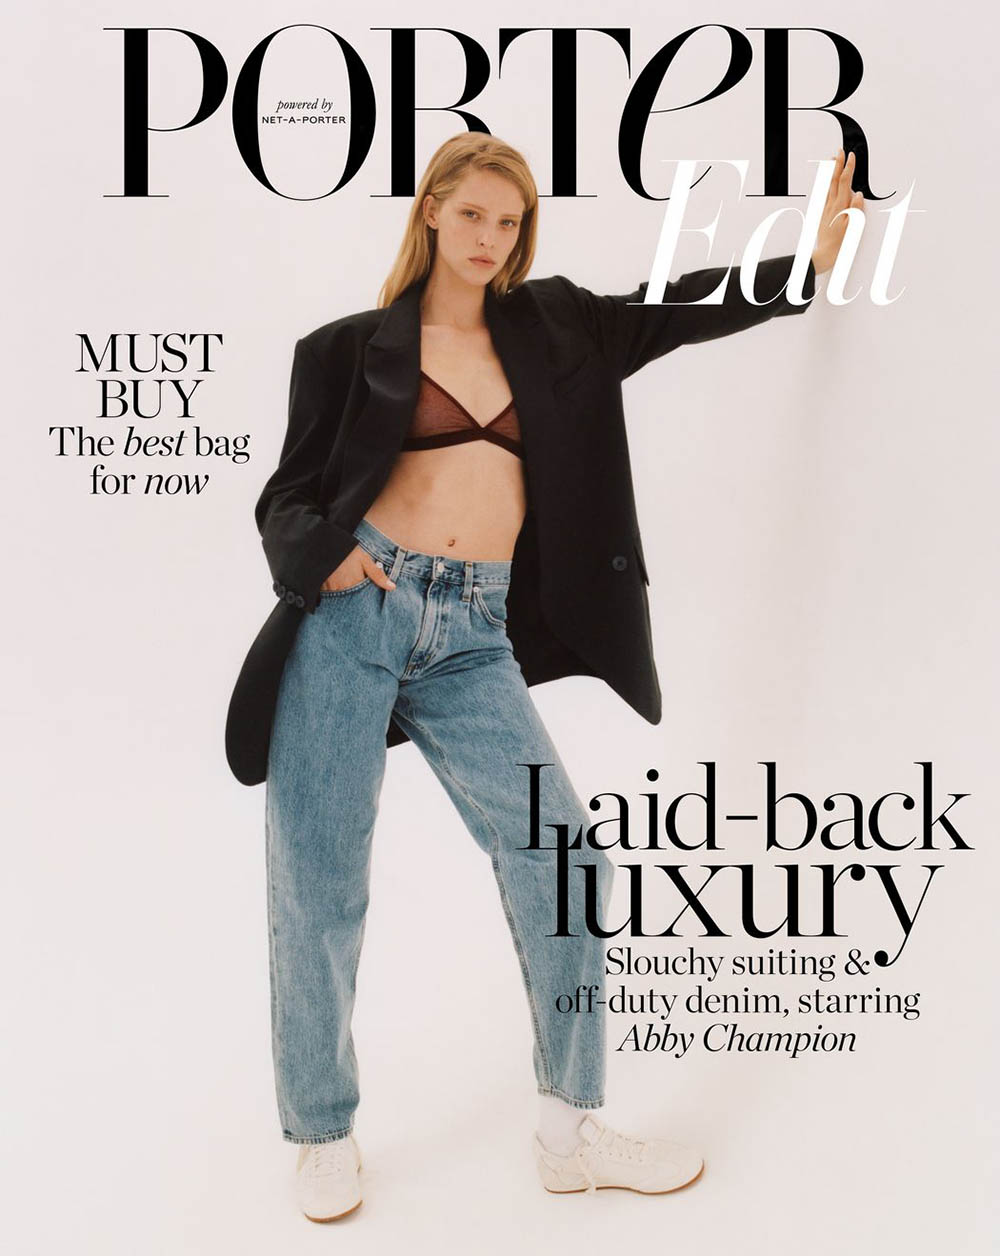 Abby Champion covers Porter Edit July 12th, 2019 by Ben Parks